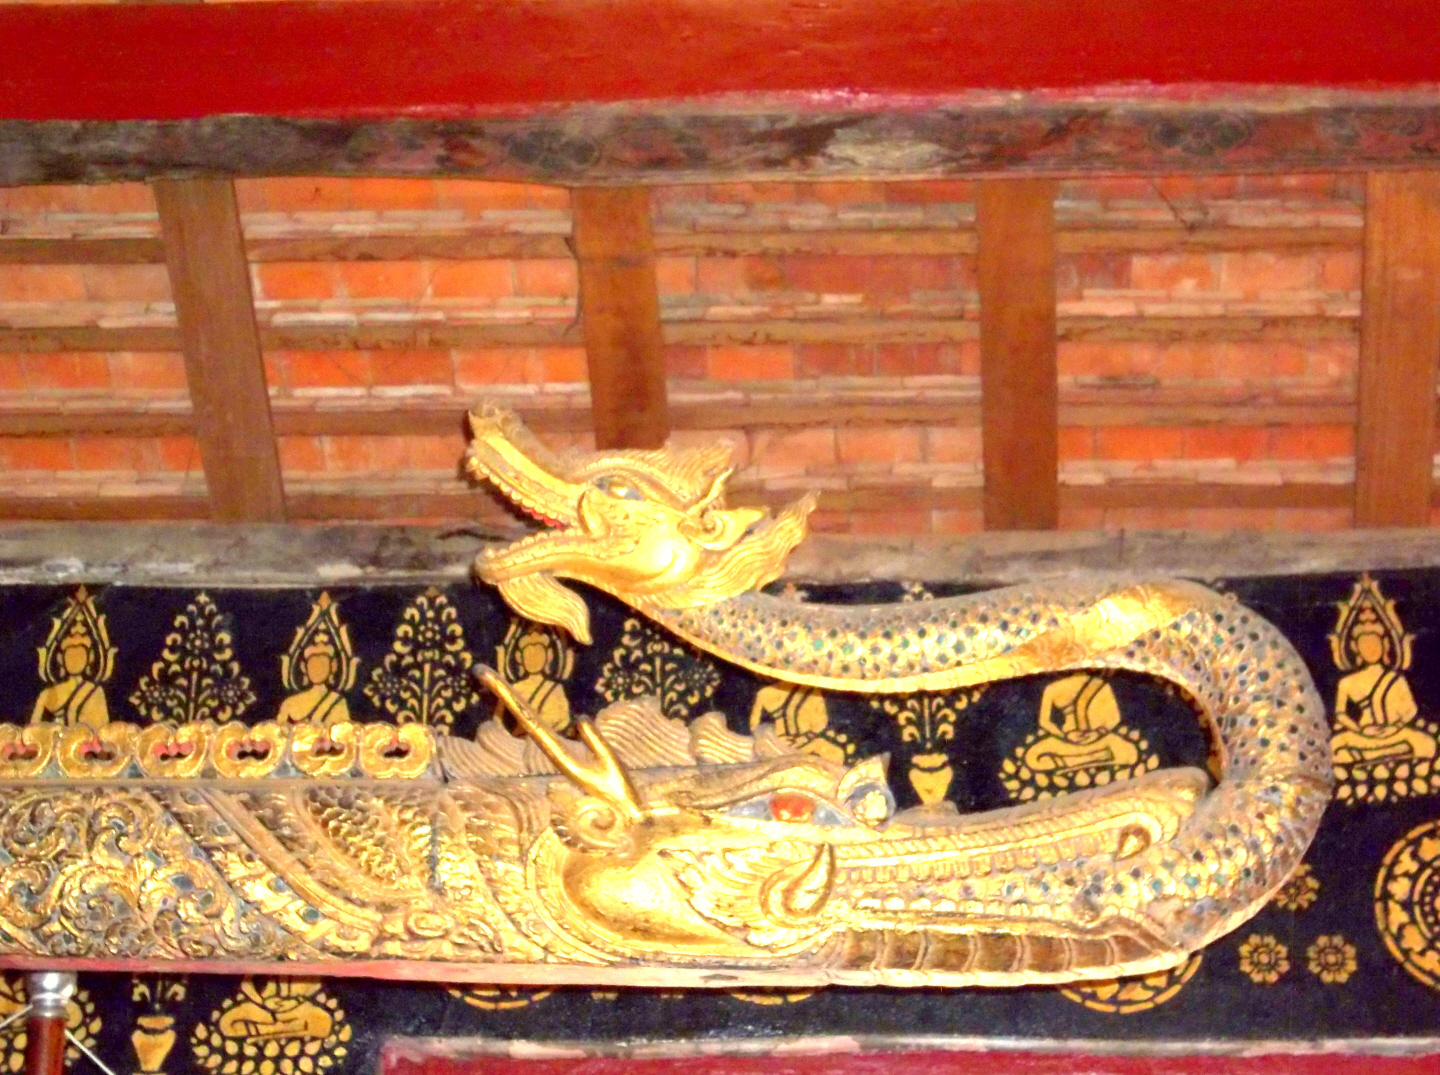 Decorative Endpiece for Pole Suspending Temple Boat - Luang Prabang, Laos